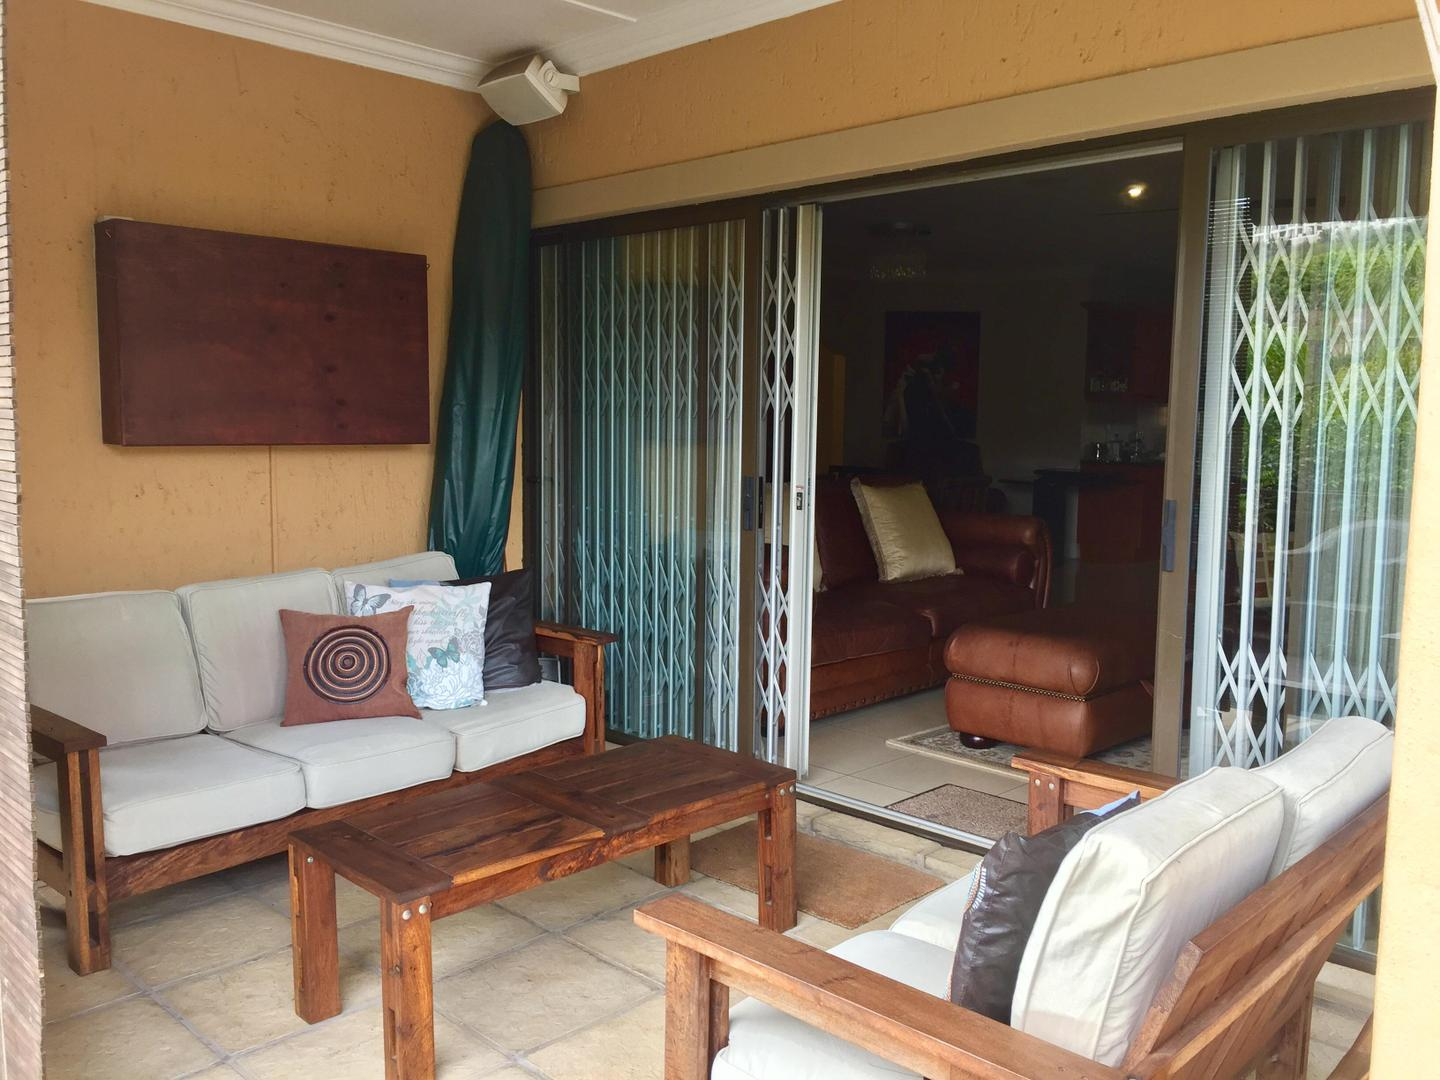 3 Bedroom House for sale in La Lucia 1801093 : photo#12